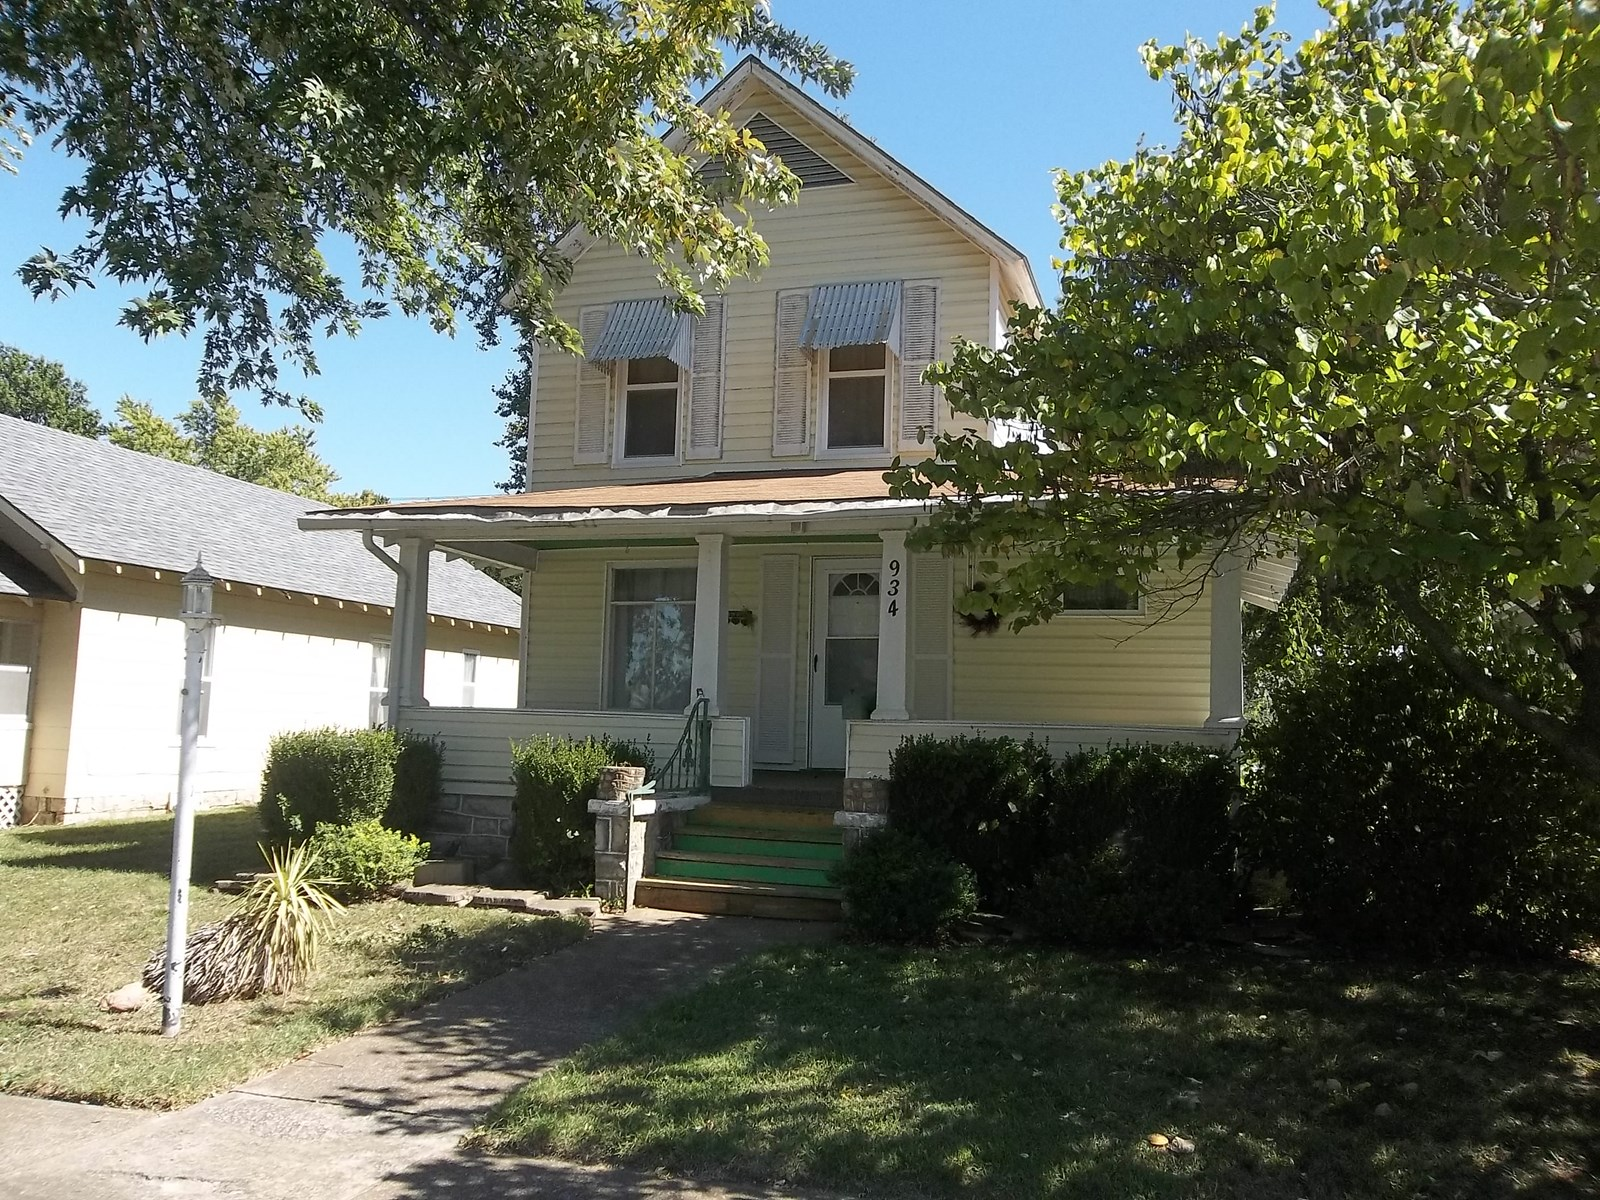 House for Sale in Chanute, Kansas